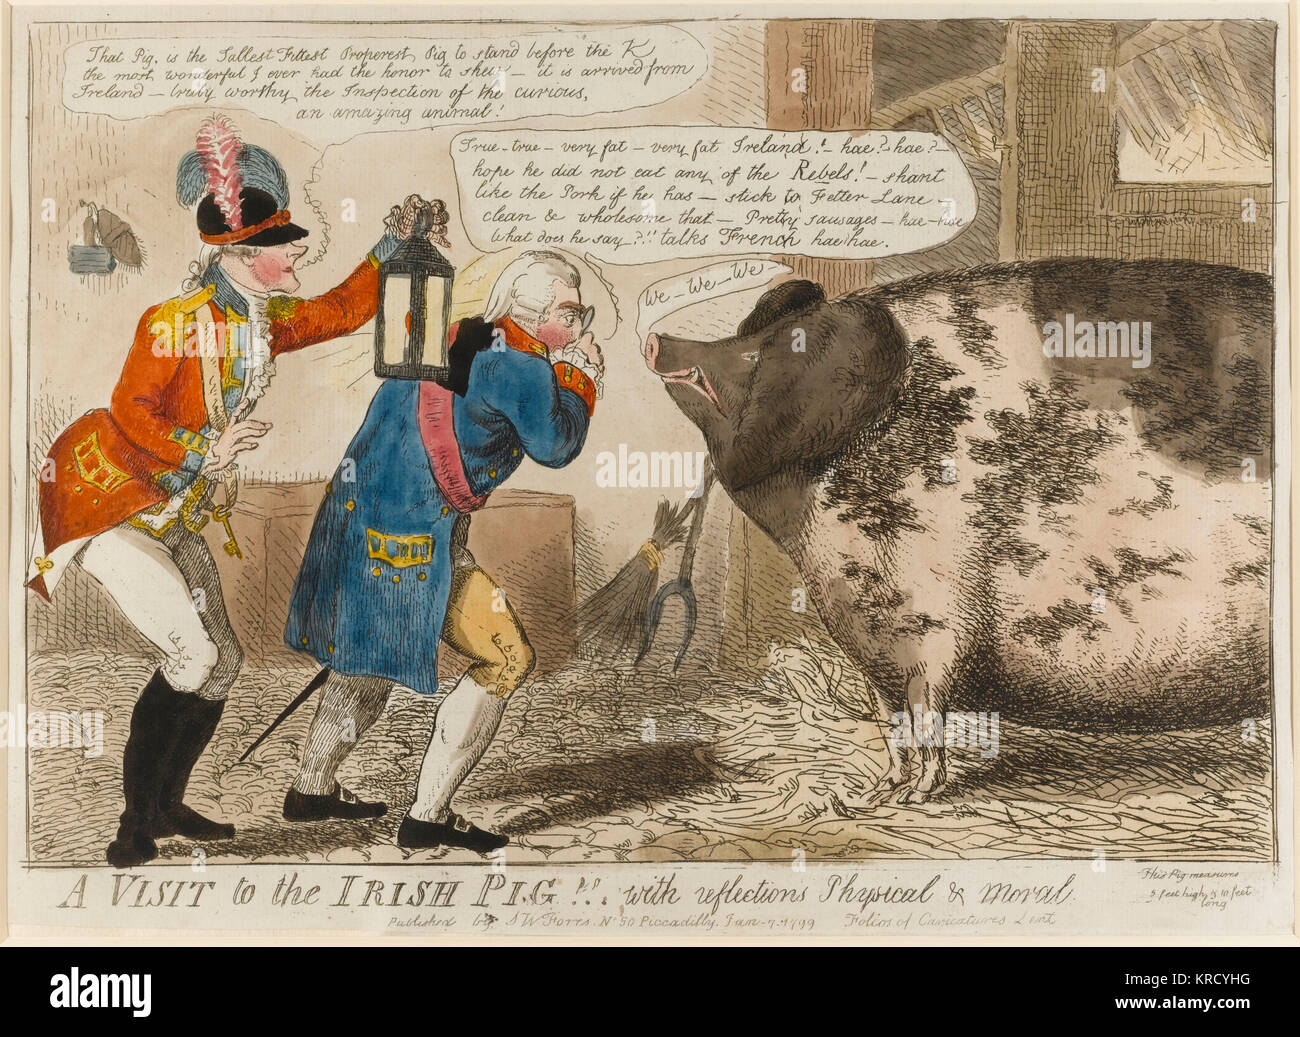 Satirical cartoon, A Visit to the Irish Pig!  With reflections Physical & Moral.  King George III, accompanied - Stock Image